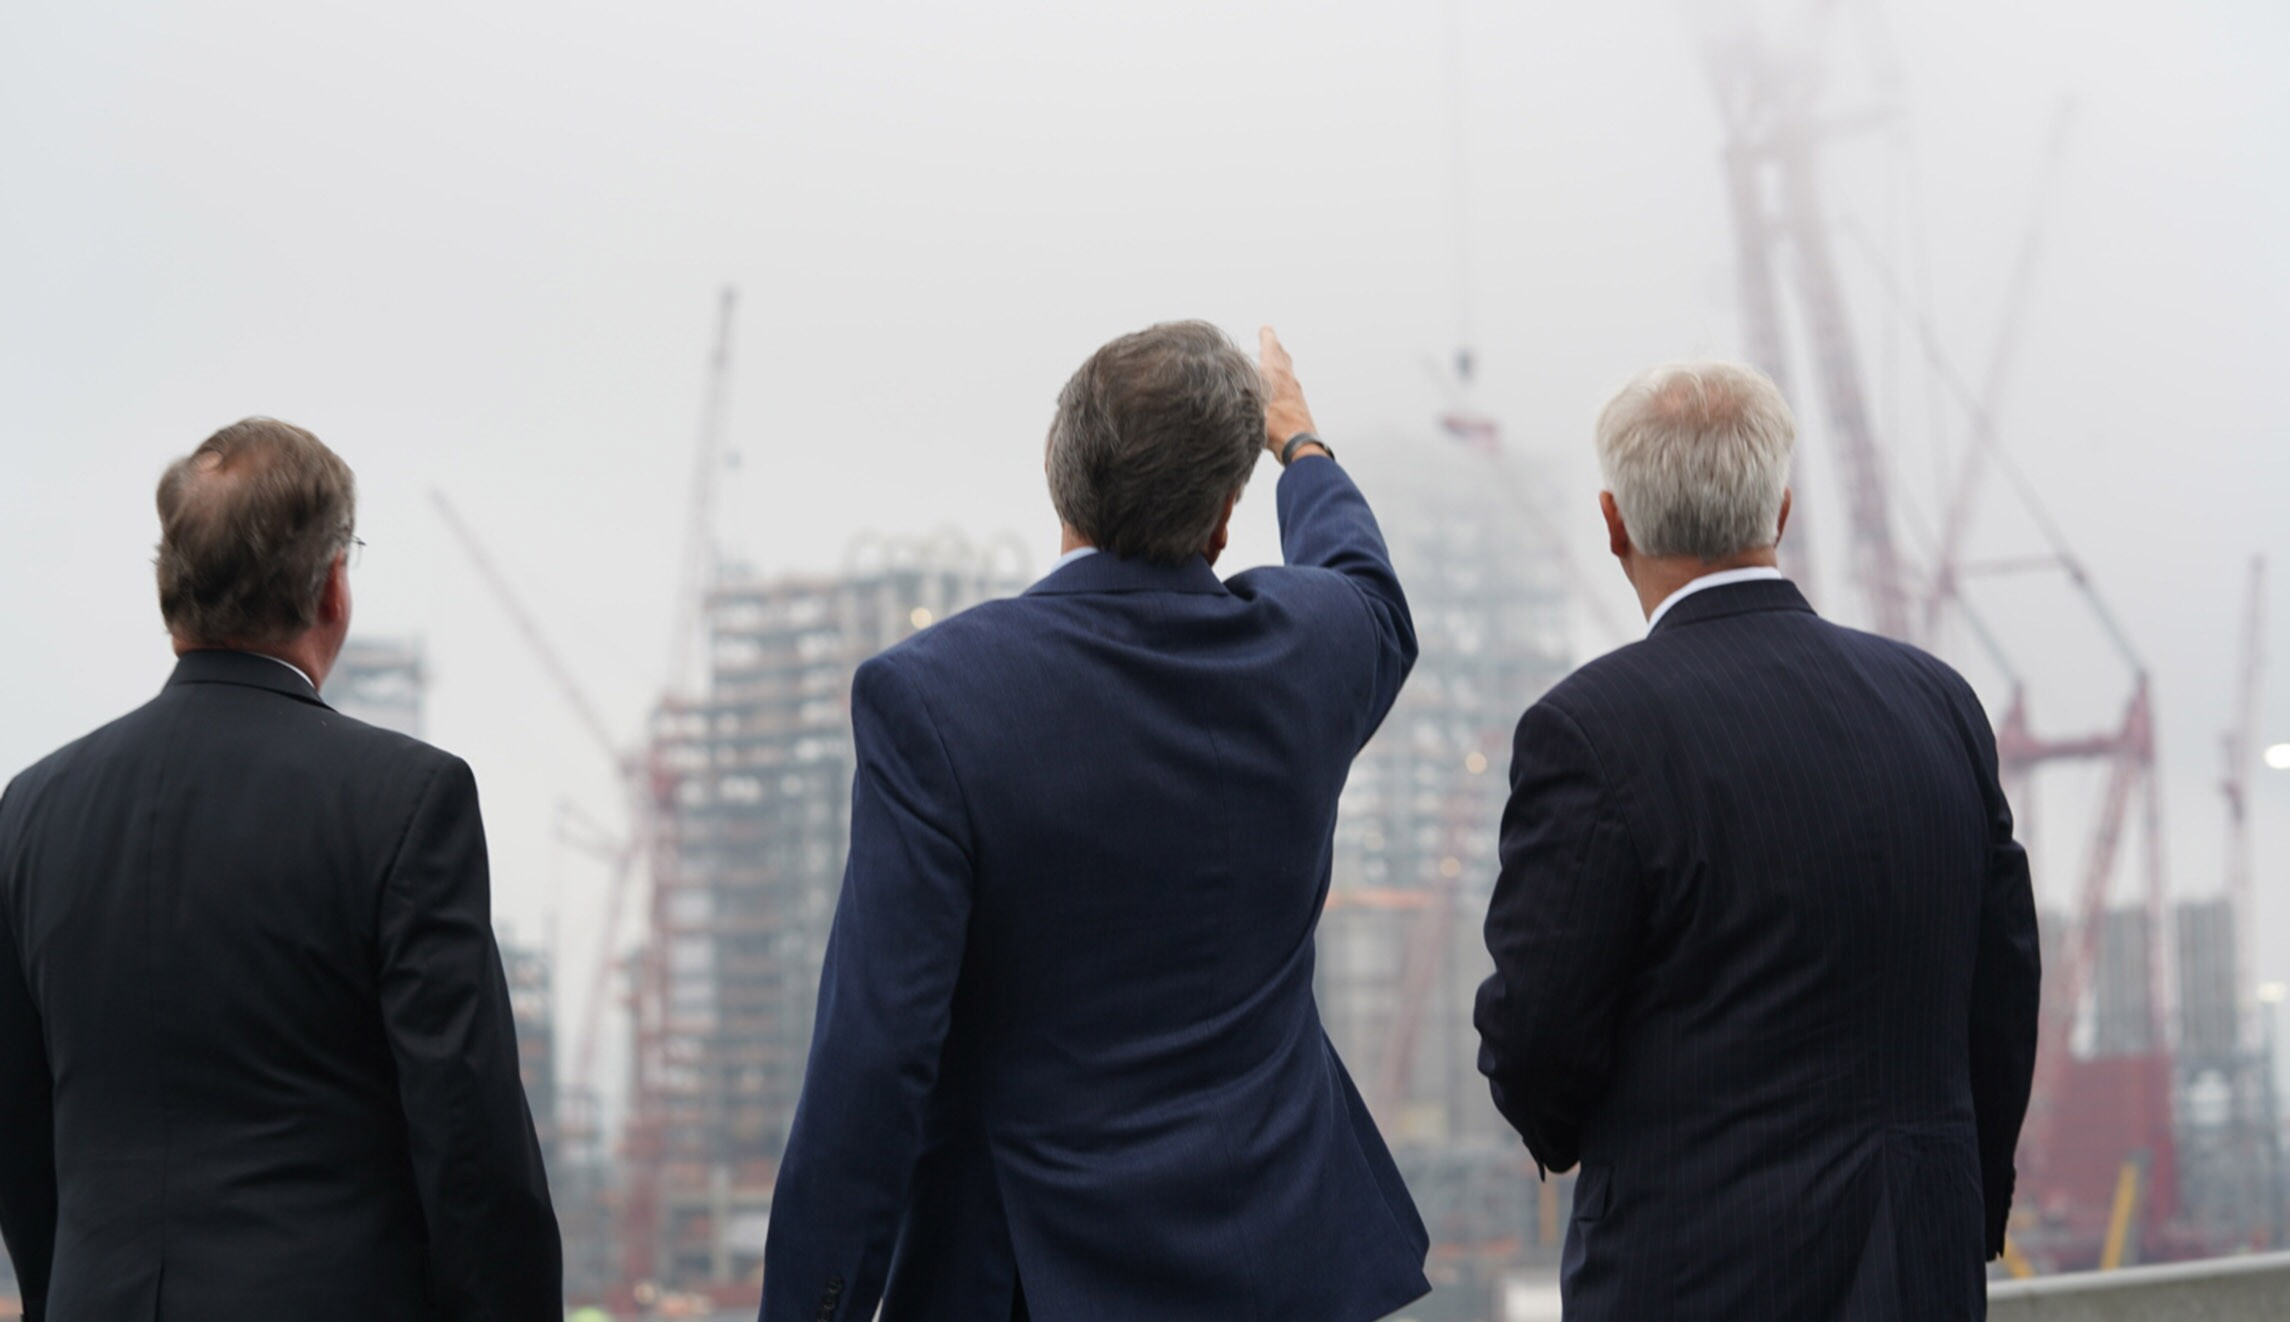 Energy Secretary Rick Perry is seen at the Shell cracker plant in Beaver County, Pennsylvania.